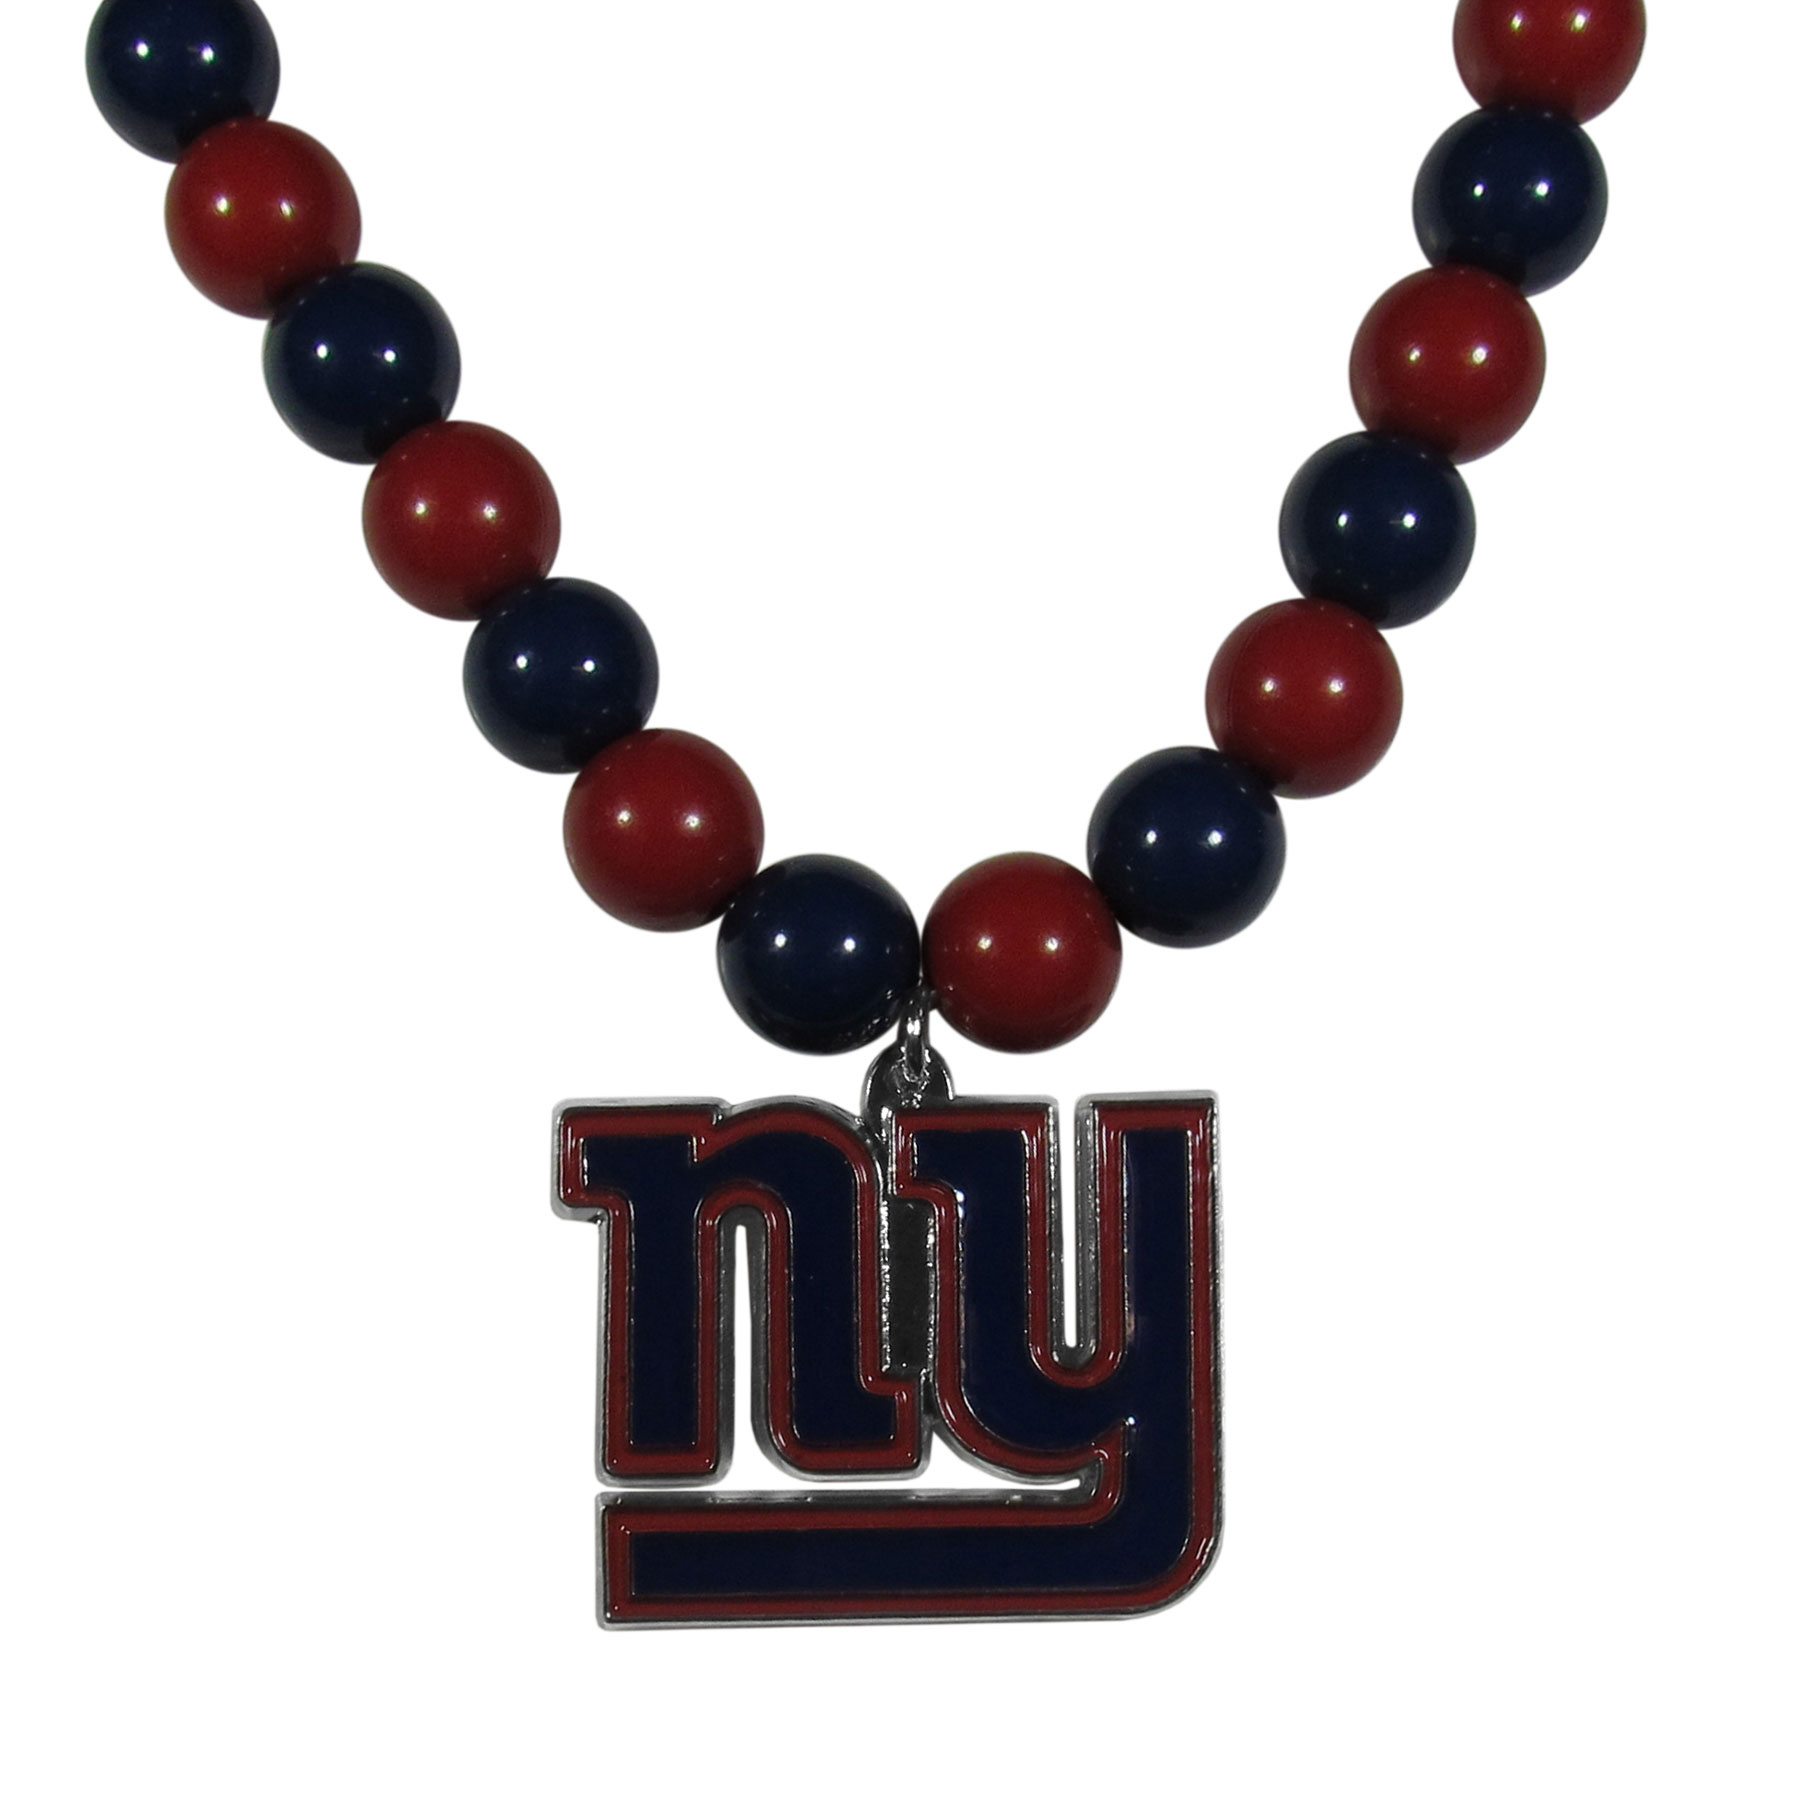 New York Giants Fan Bead Necklace - Make a big statement with our fan bead necklaces! These brightly colored necklace have a 24 inch string of alternating colored beads with an extra large, high-polish New York Giants pendant.